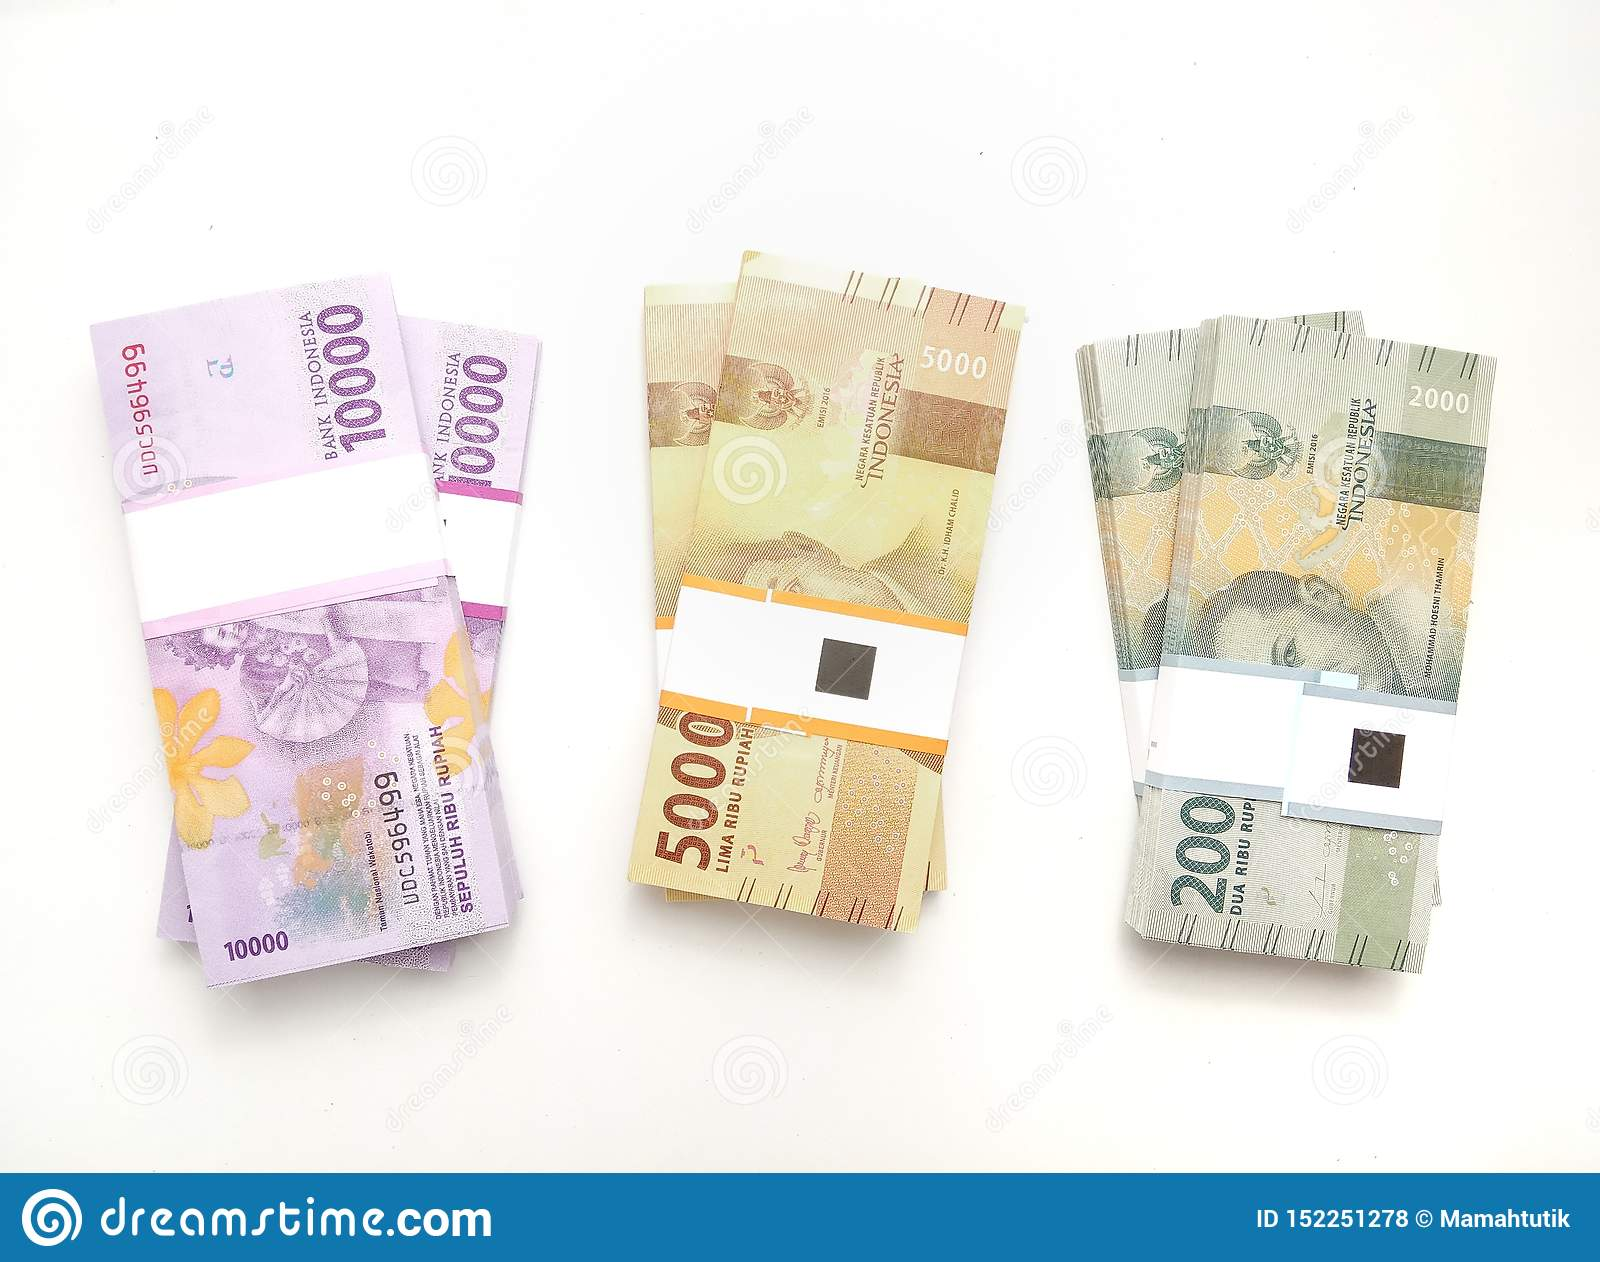 Flat Lay, Photo Simple Photo, Top View, Packs of Rupiah Indonesia Money, 2000, 5000, 10000, at white background